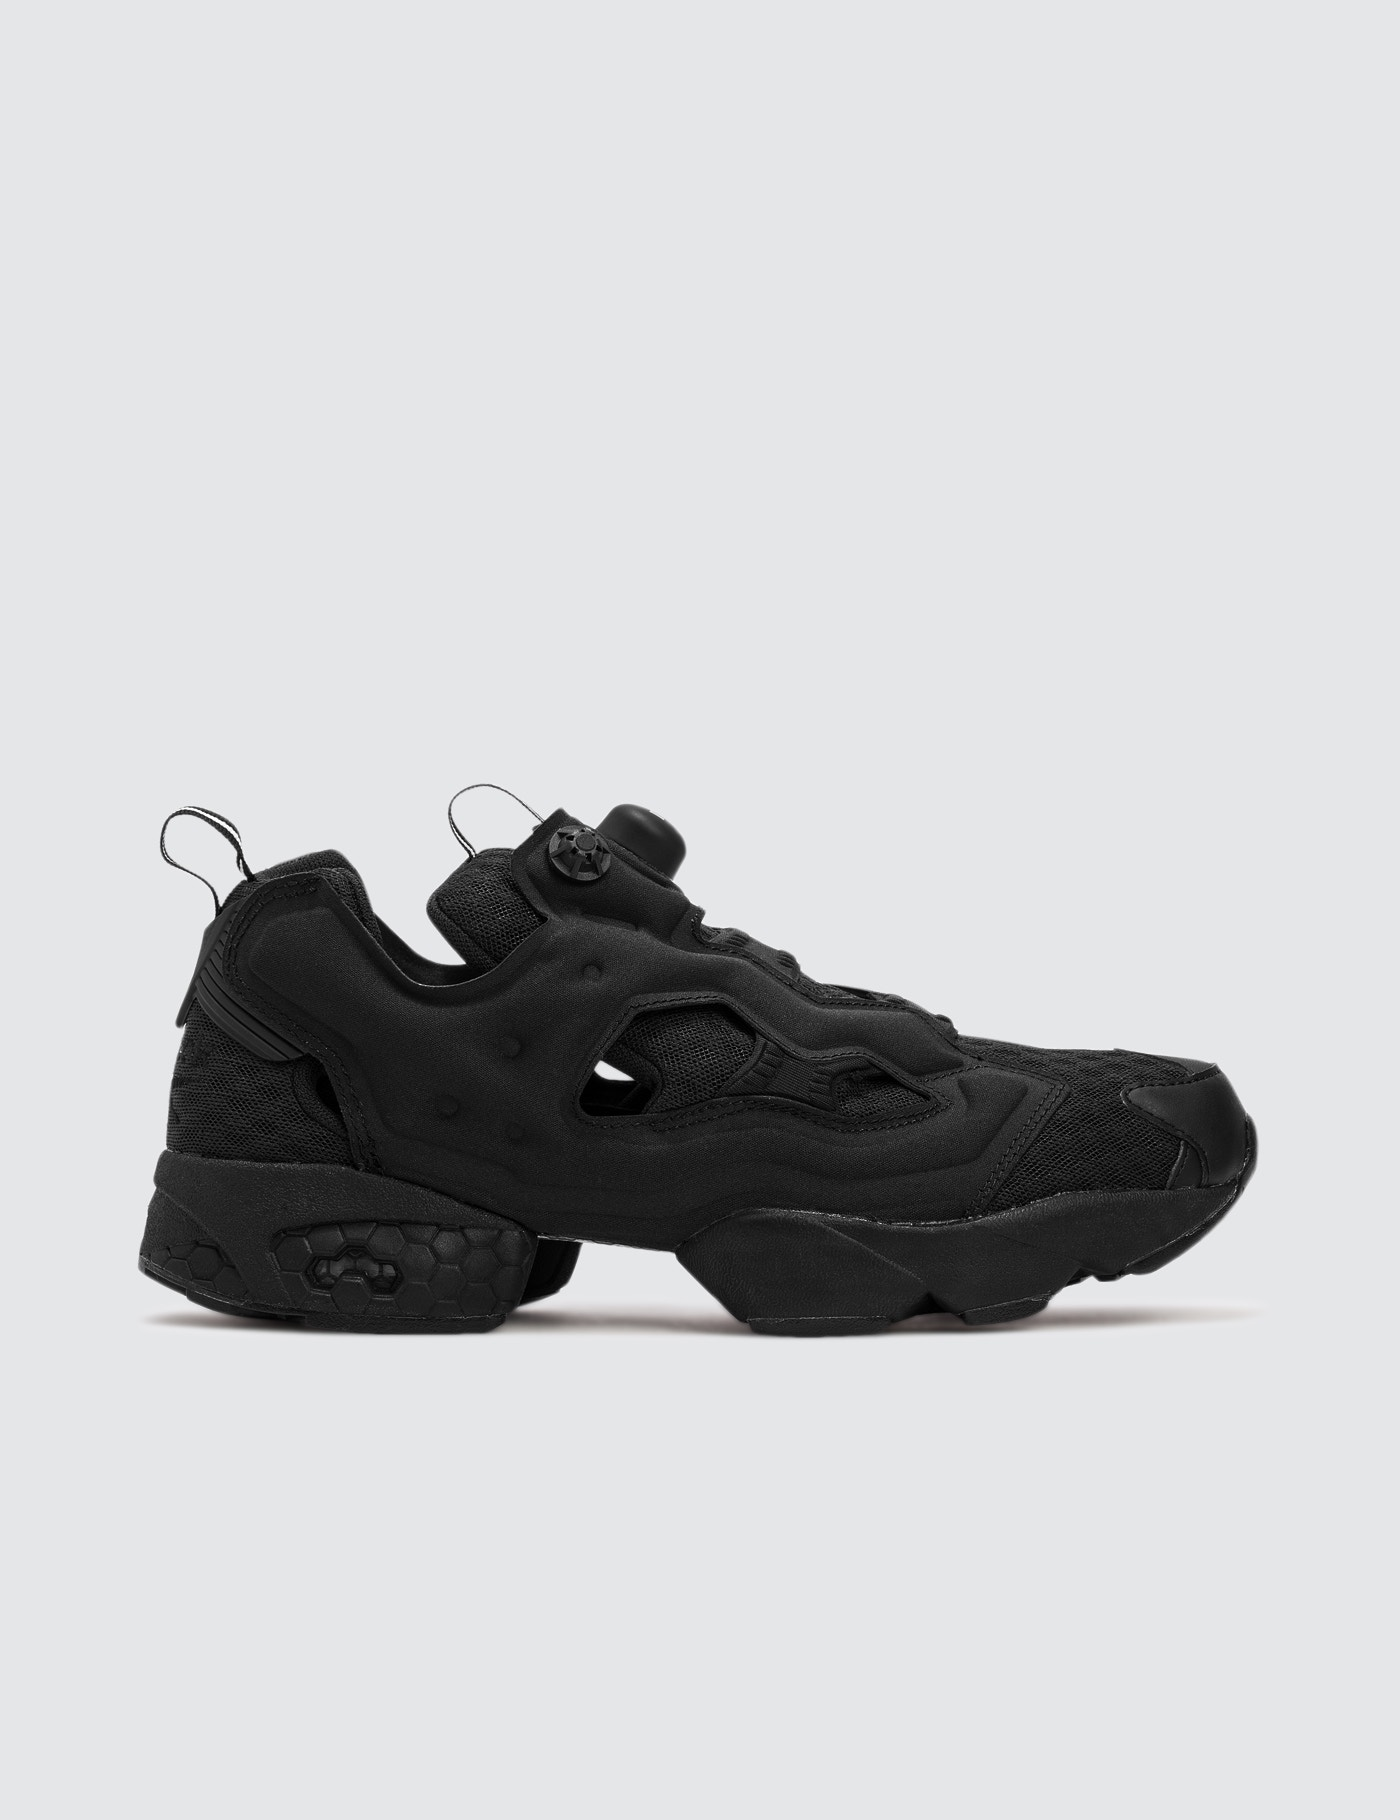 Shop By Products. New in Sale · All Sale · Clothing · Shoes · Accessories · Reebok  Instapump Fury OG CC · Reebok Instapump Fury OG CC ... 9fea823a3